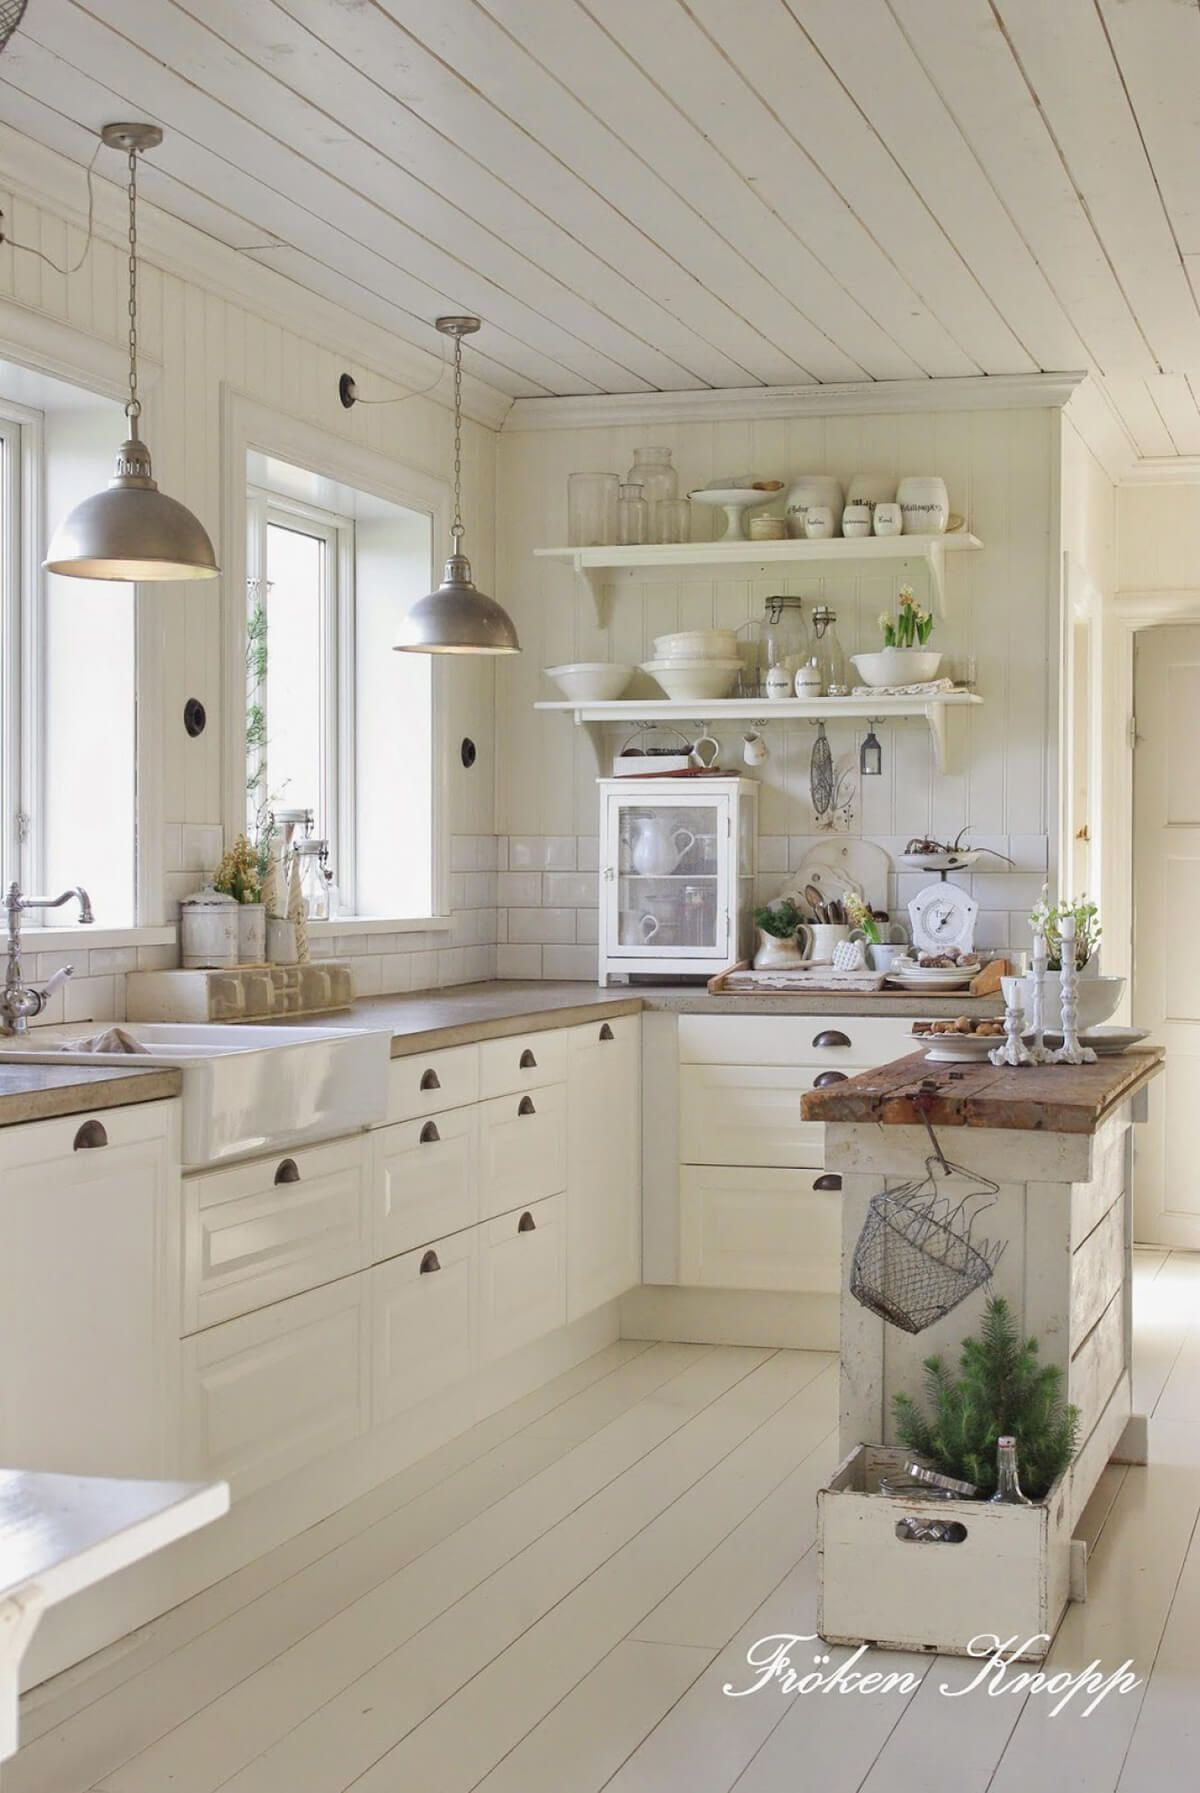 French Country Kitchen Impressive 35 Charming French Country Decor Ideas With Timeless Appeal Design Inspiration